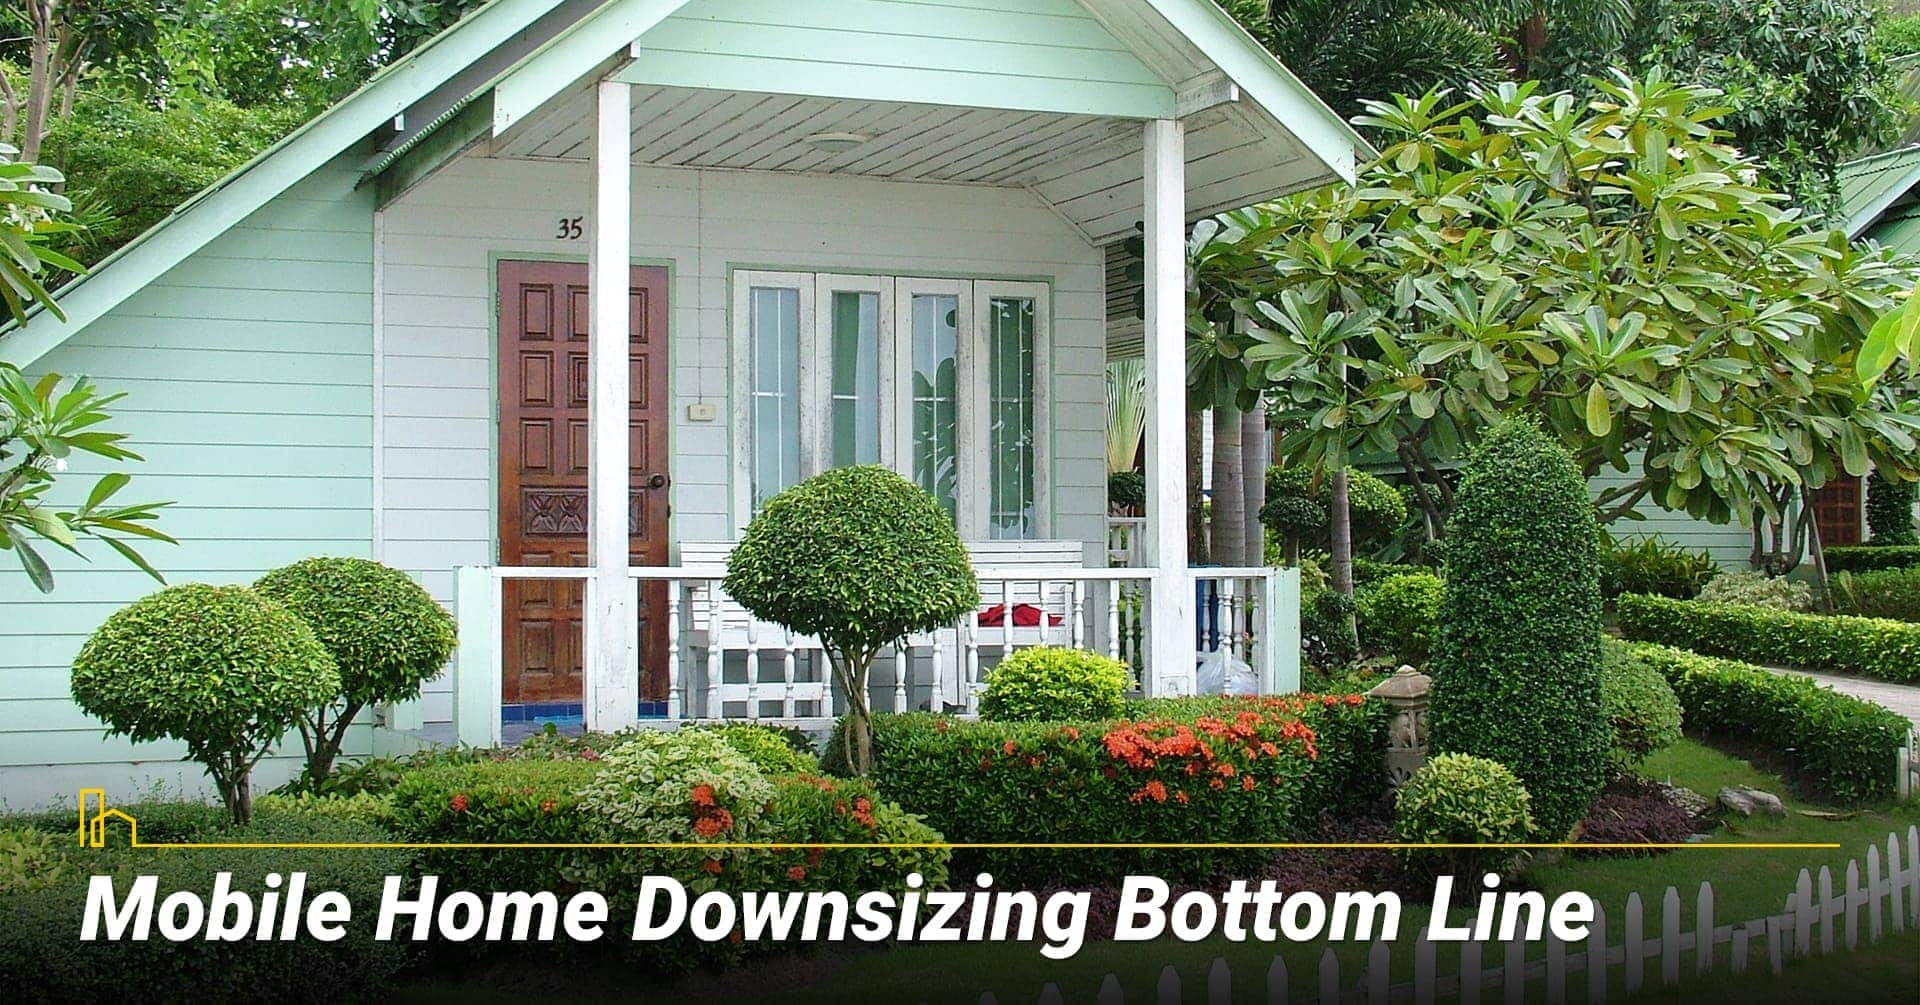 Mobile Home Downsizing Bottom Line, downsize to mobile home